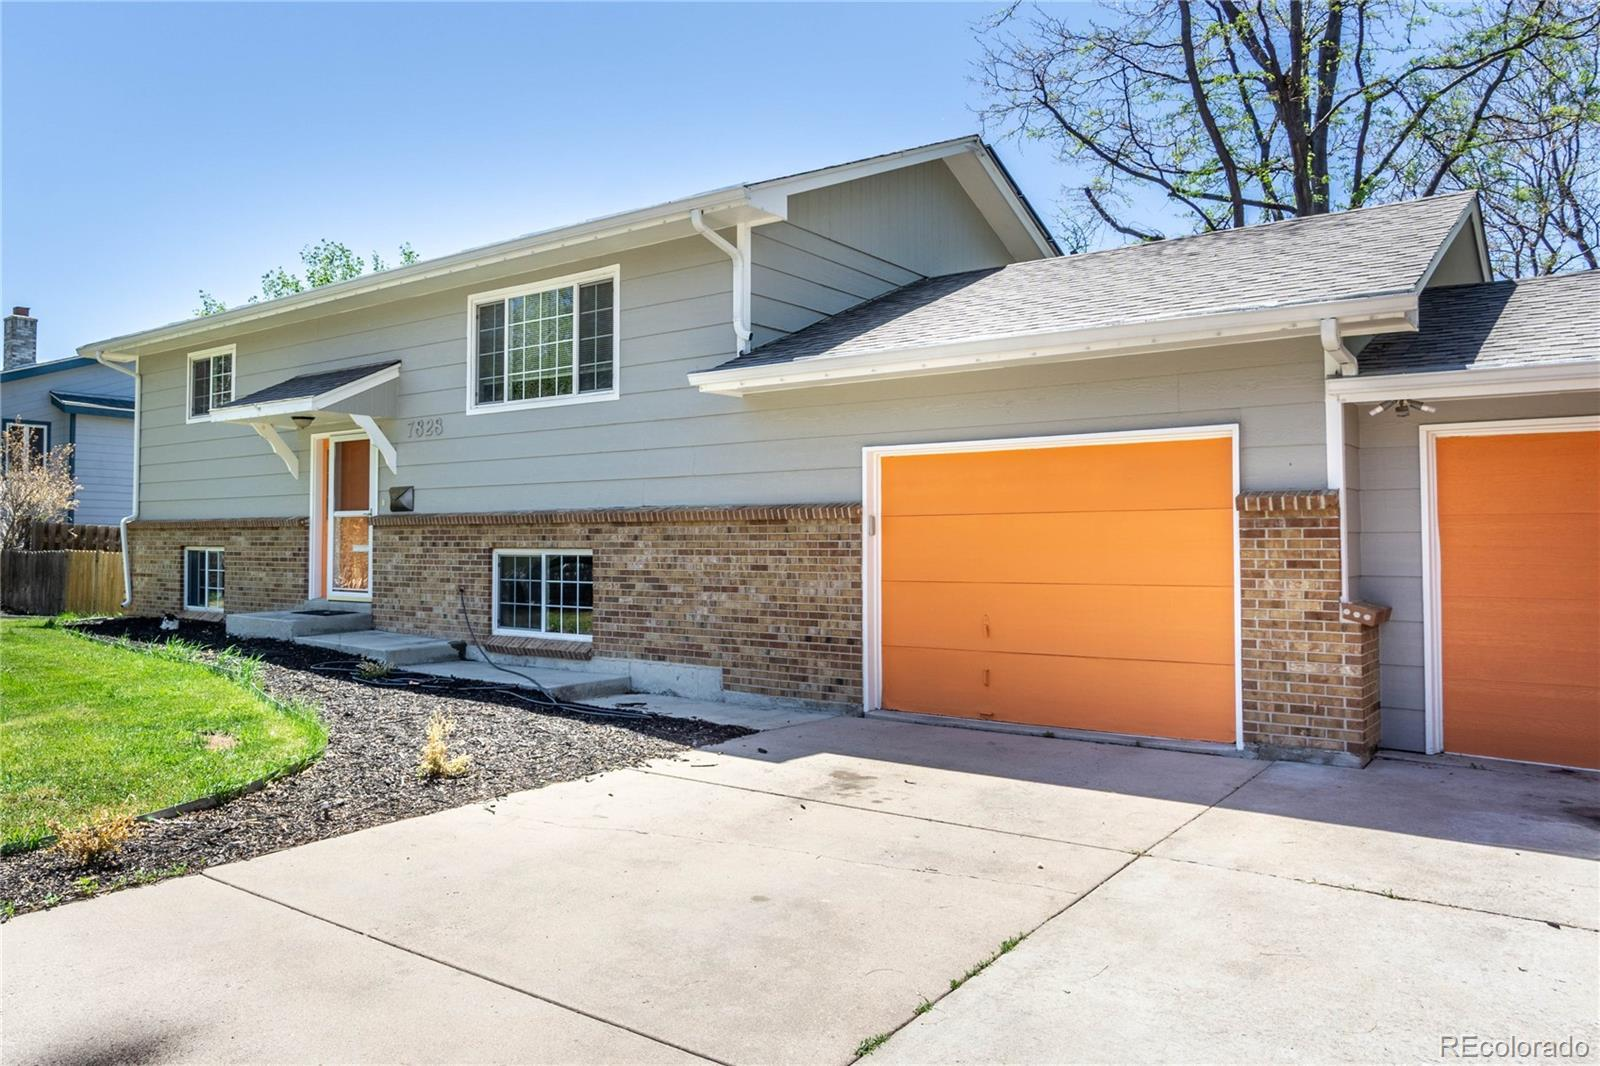 7828 W 62nd Place, Arvada, CO 80004 - #: 1645056